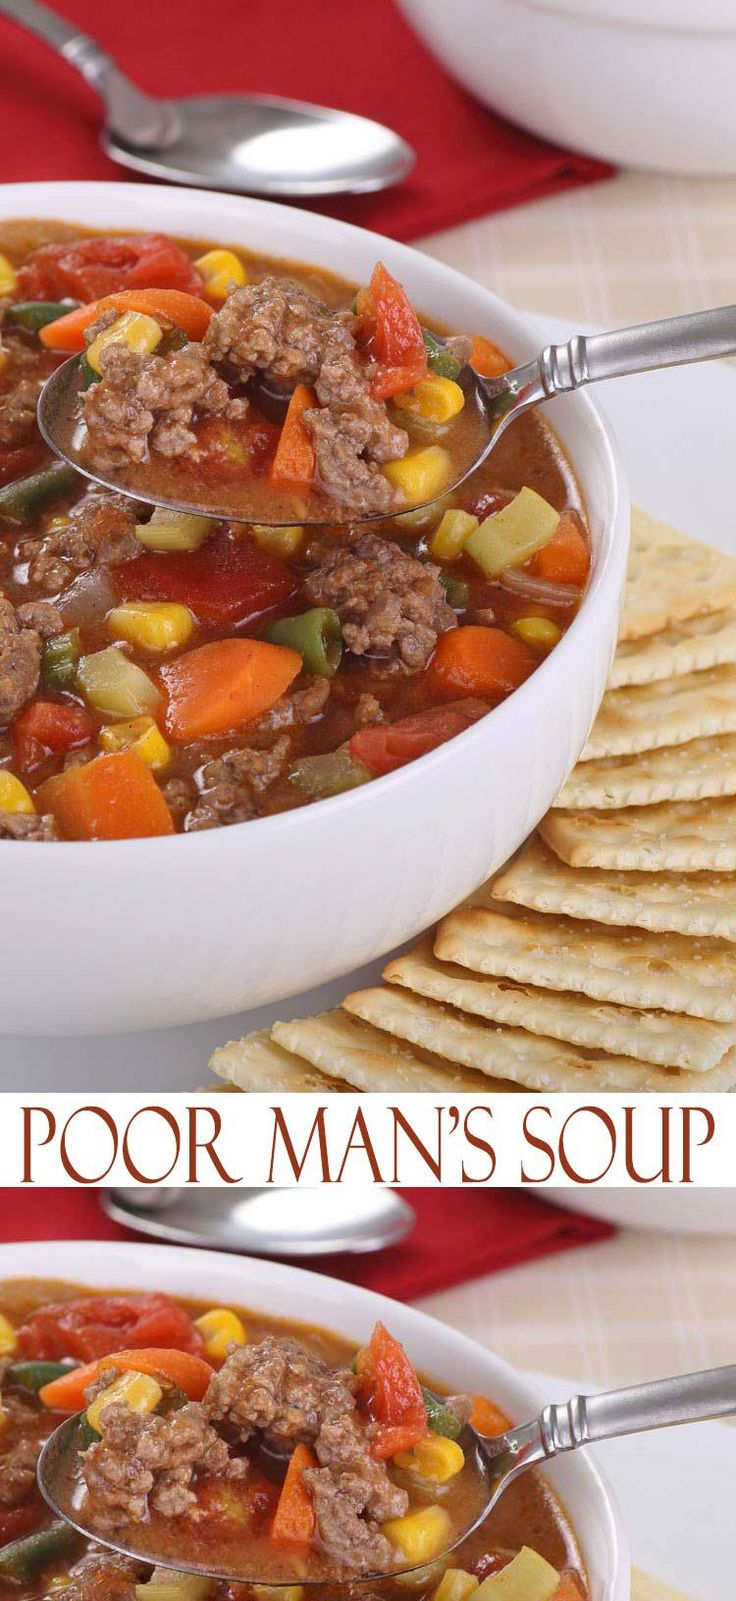 Poor Man's Soup Recipe. Poor Man's Soup recipe is a simple soup recipe with budget ingredients that is easy to make…